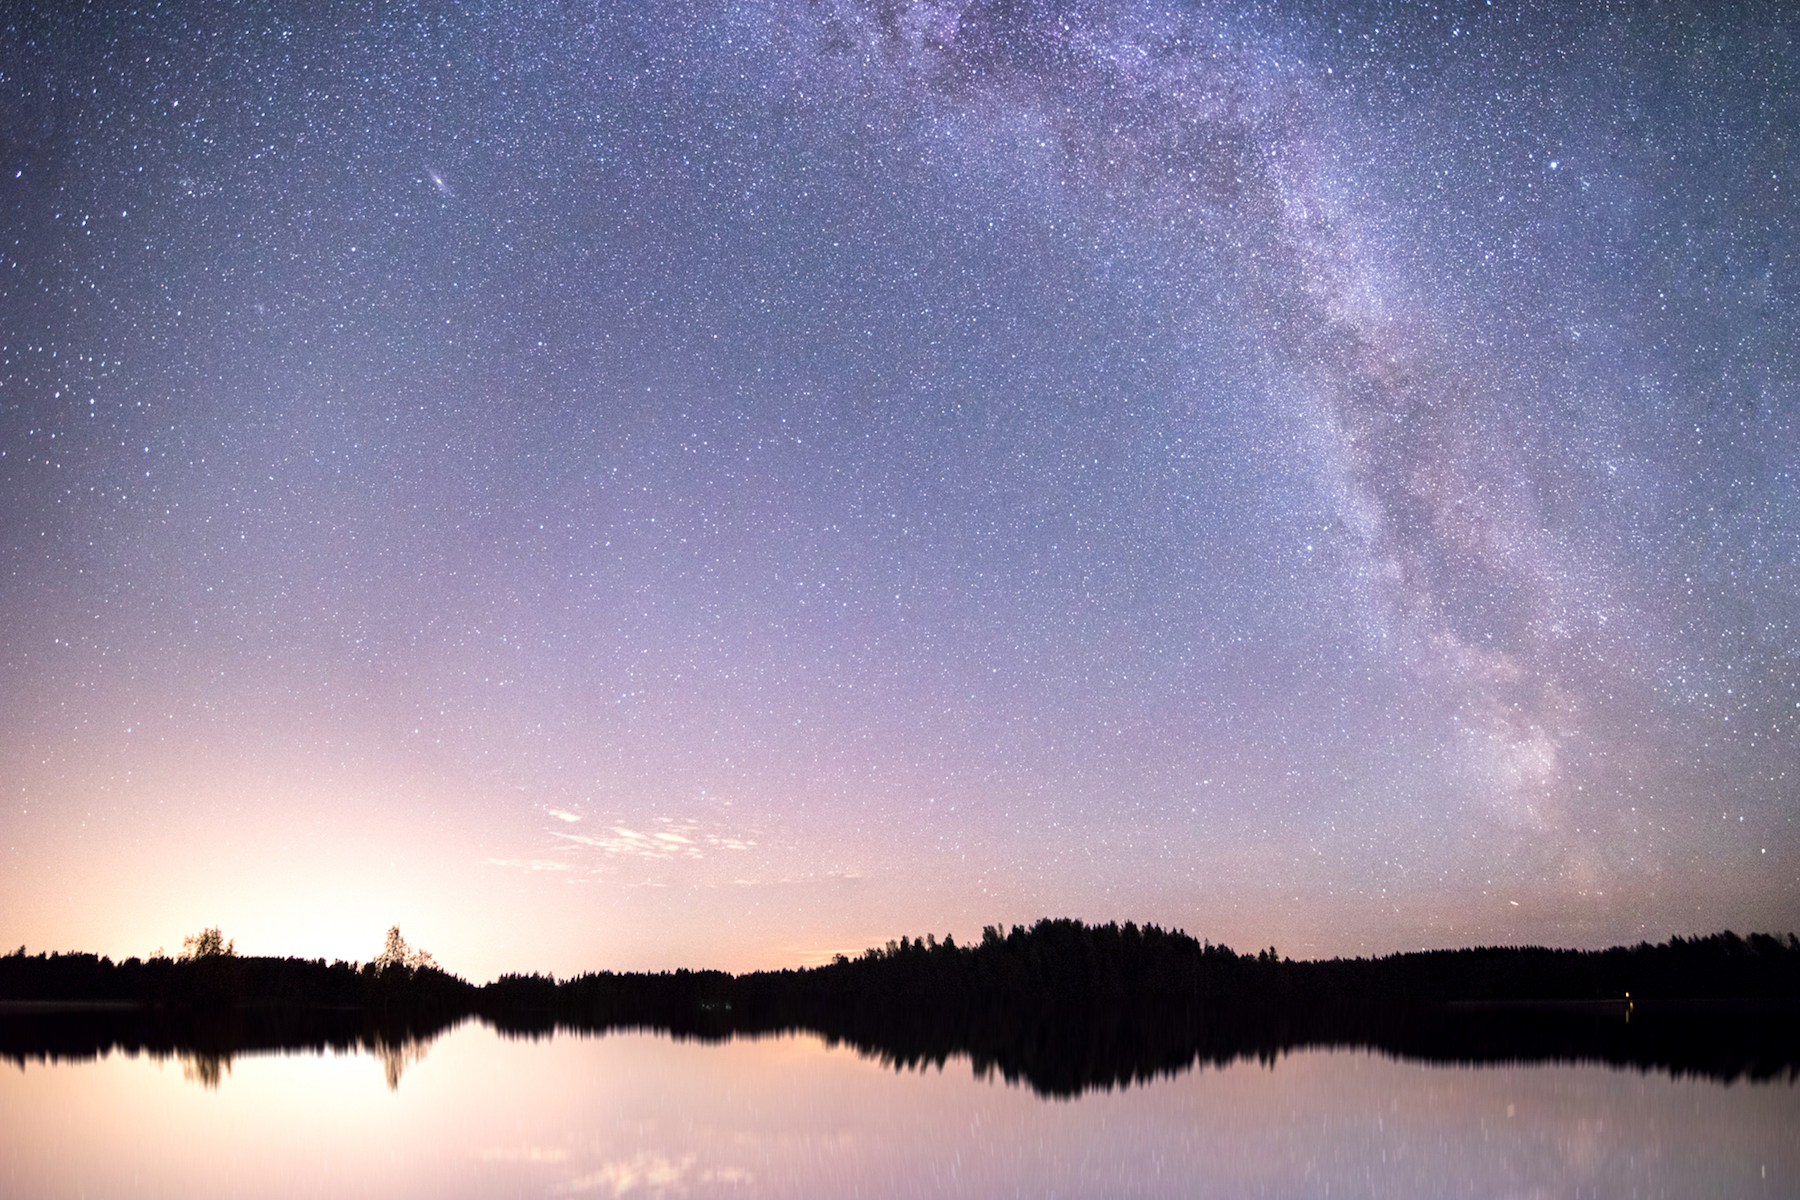 reflection-milky-way-lake-thomas-drouault-portfolio.jpg